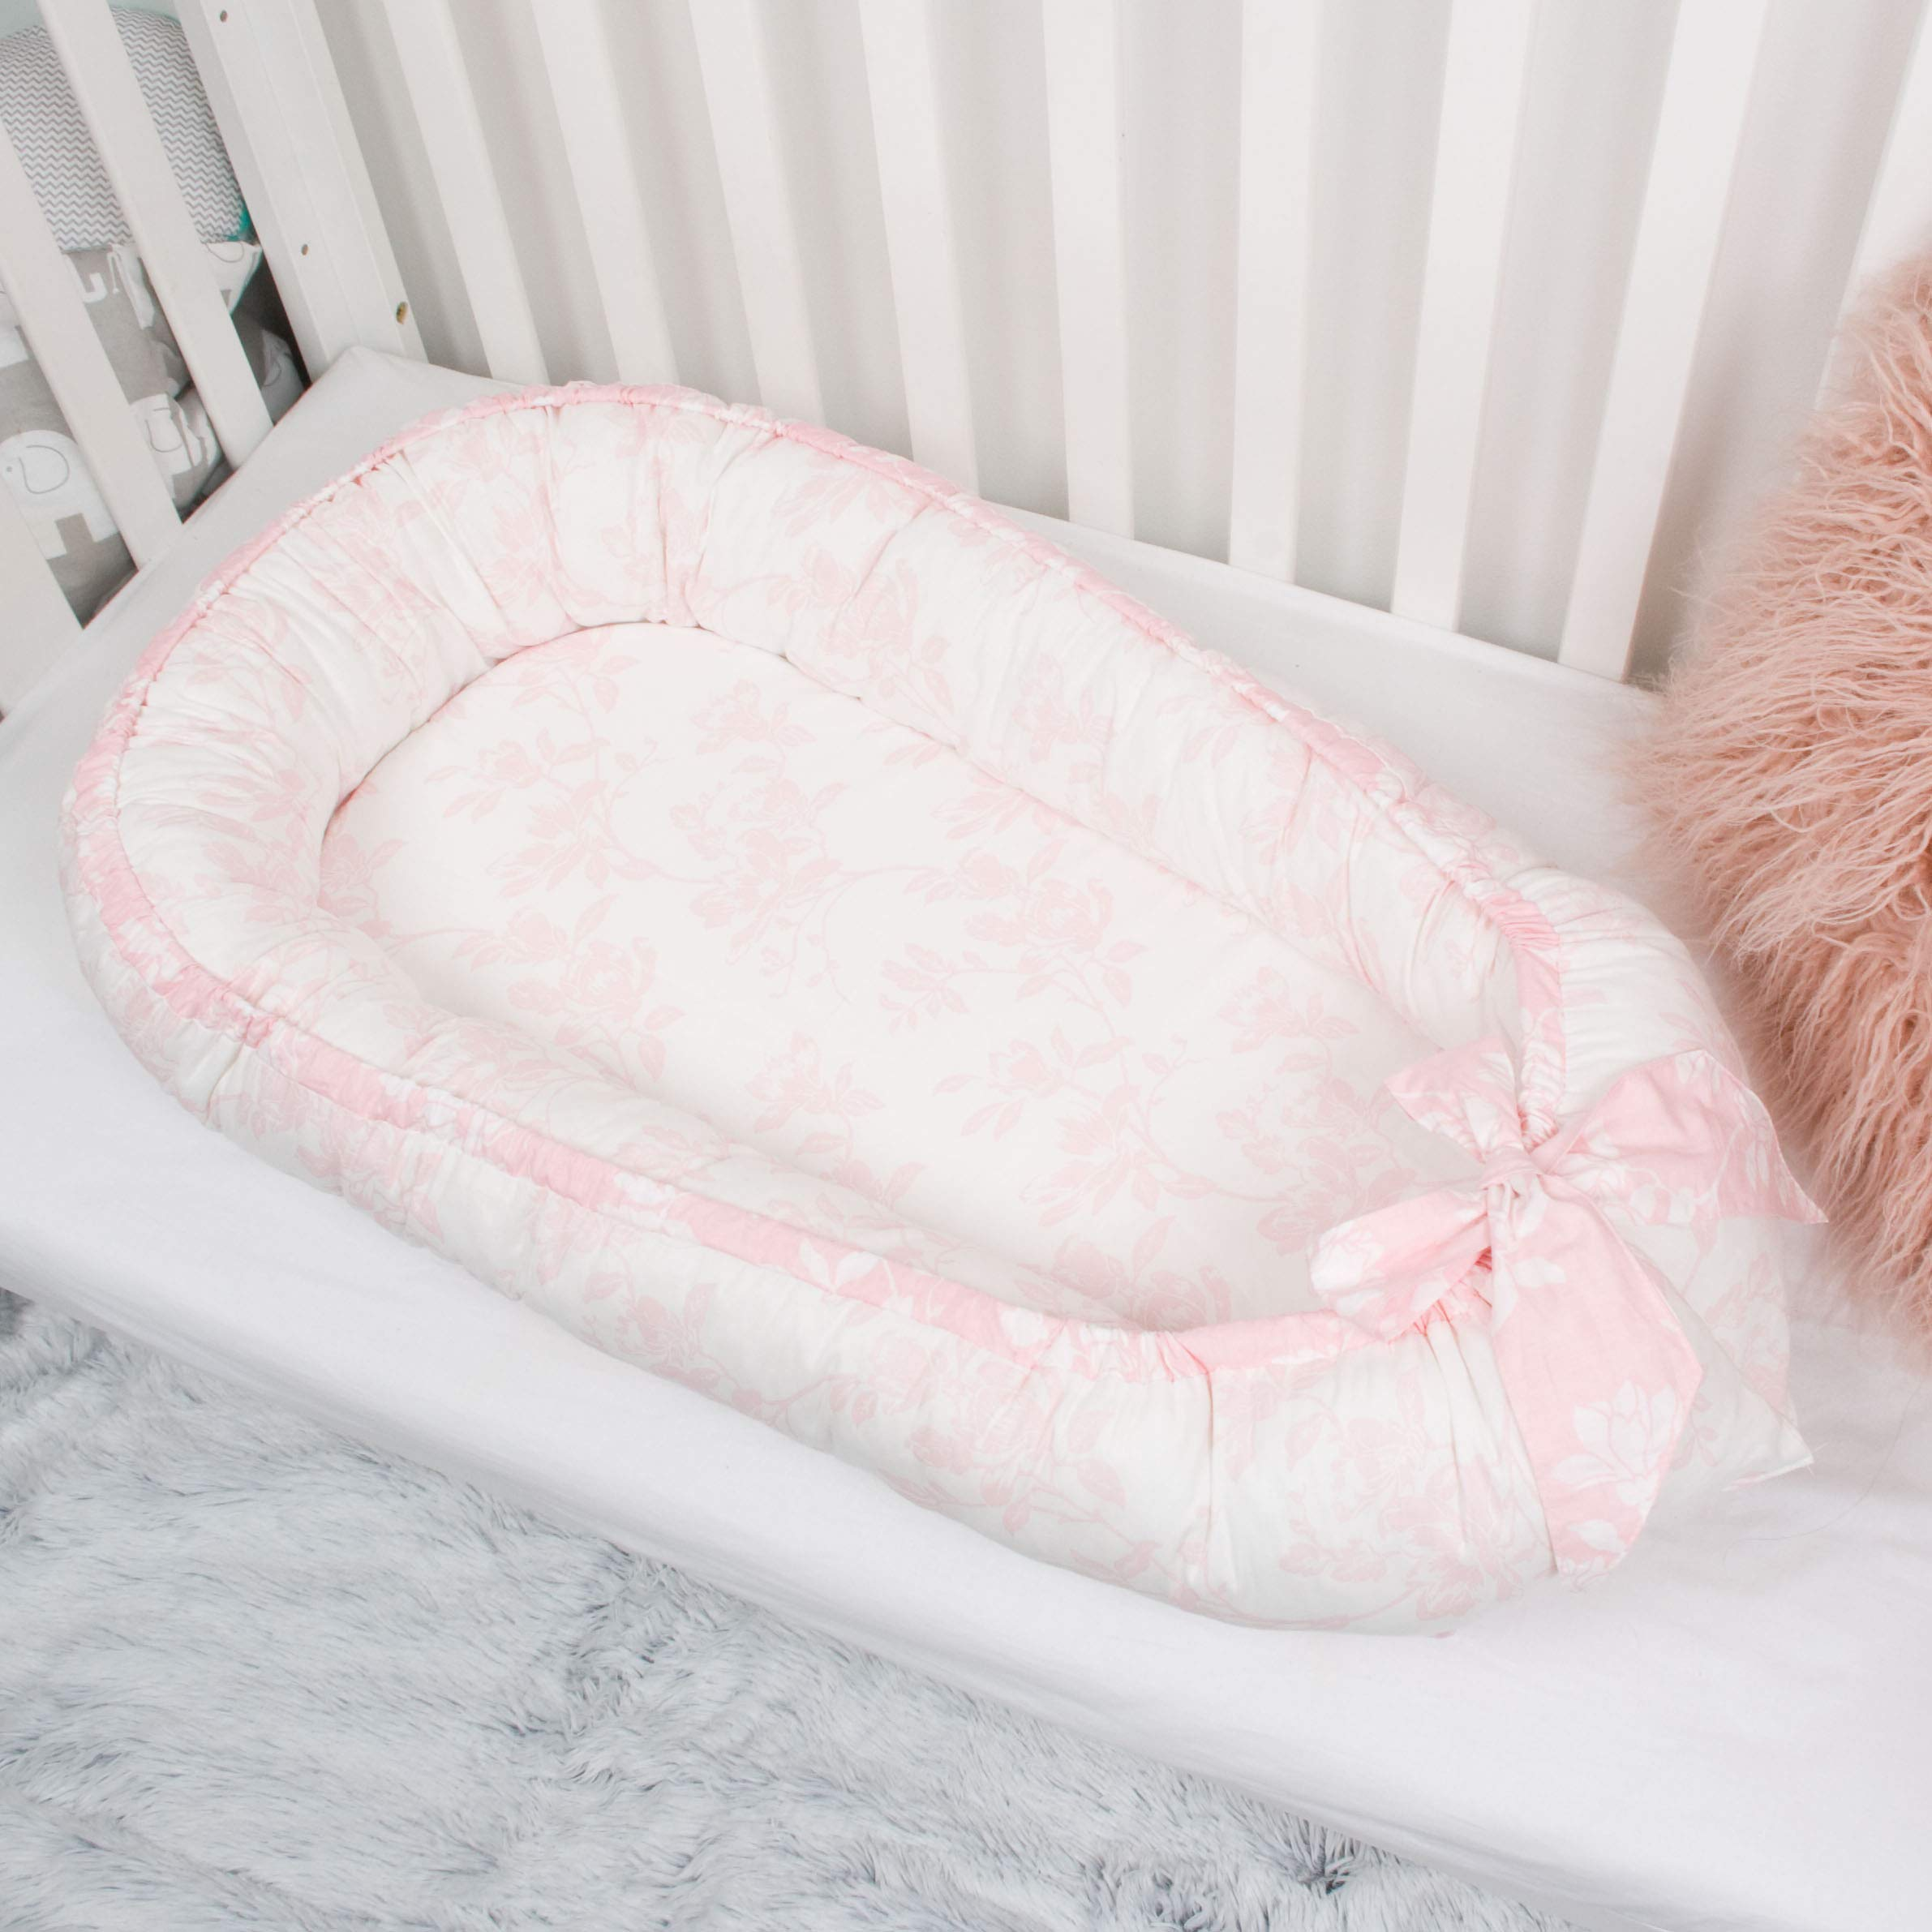 Pink dreams Baby nest bed or toddler size nest portable crib lounger baby bassinet co sleeper babynest babynest bed travel pad pod for newborn